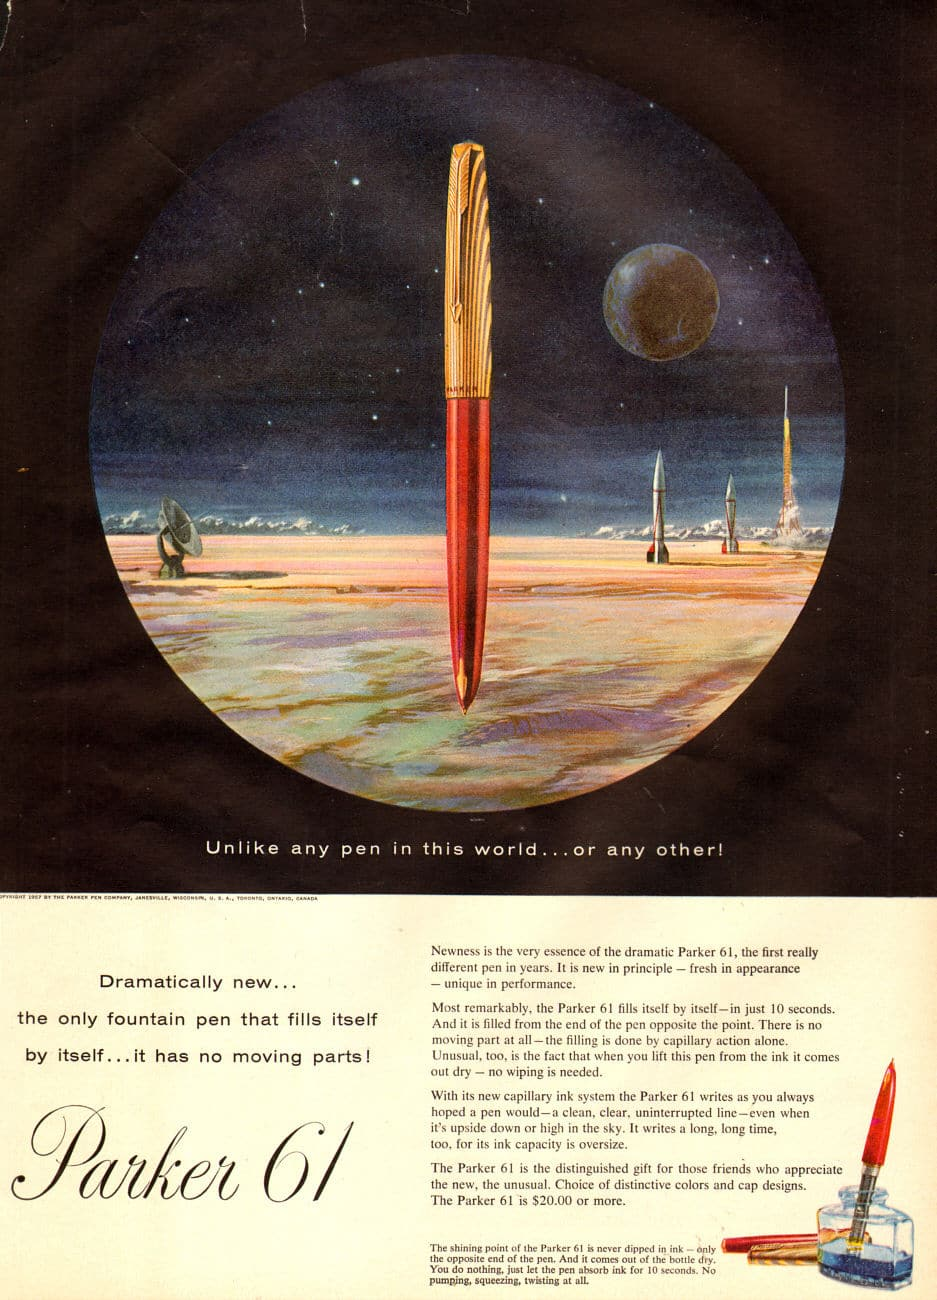 parker 61 fountain pen vintage ad advertisement